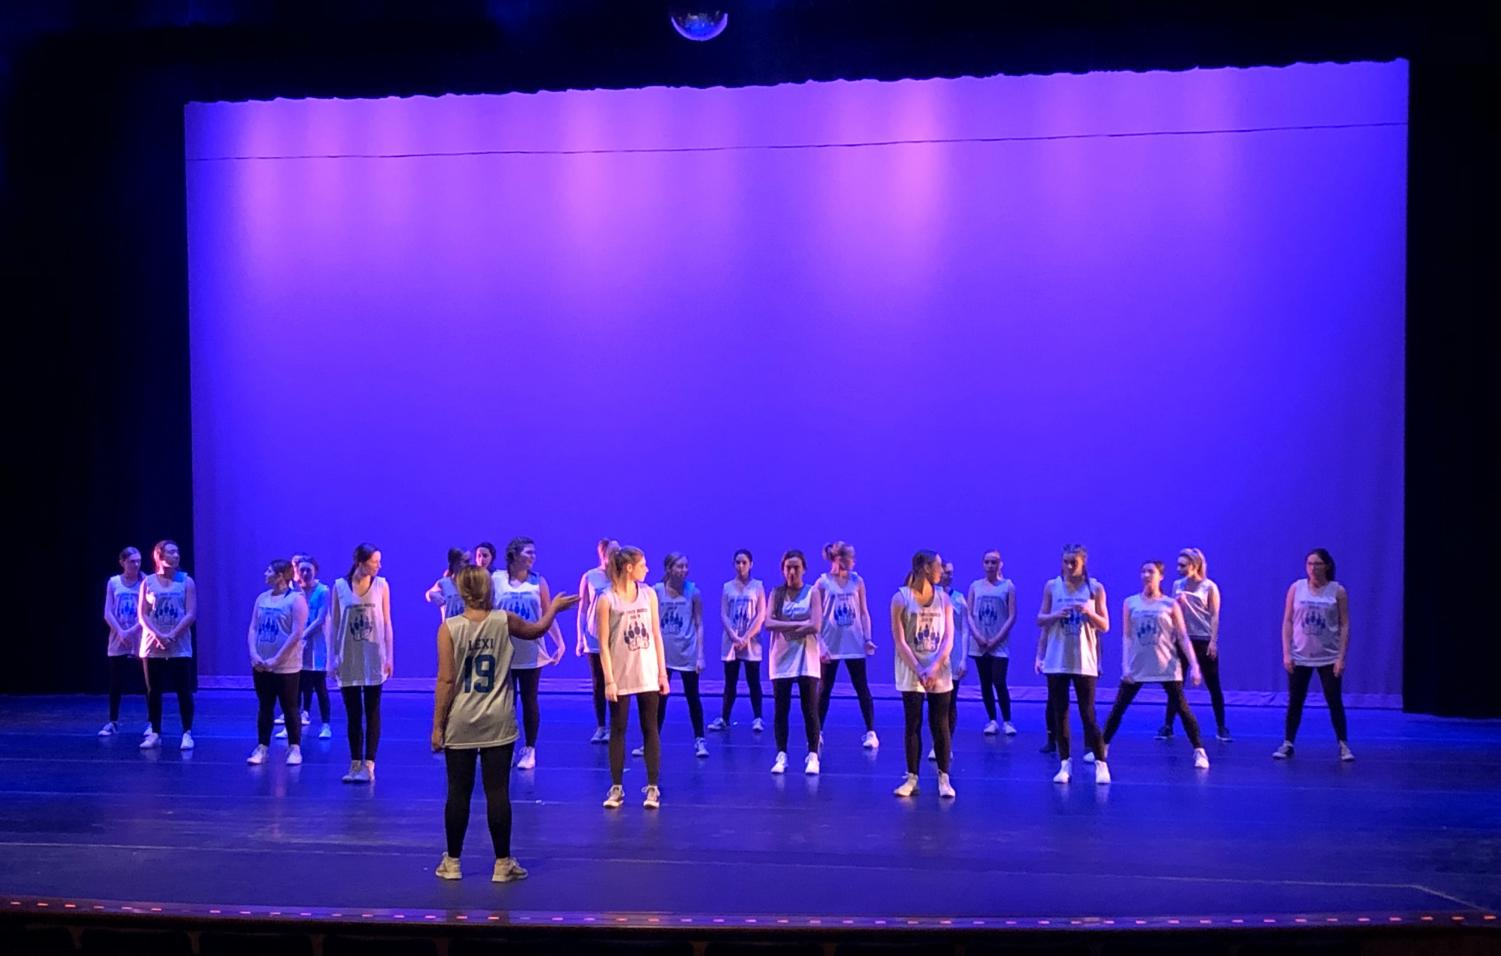 The orchesis practices the routine that they will be showcasing at their show. Although a few of their members have never danced hip-hop before, practices such at these have helped to ensure that everyone knows what they are doing.